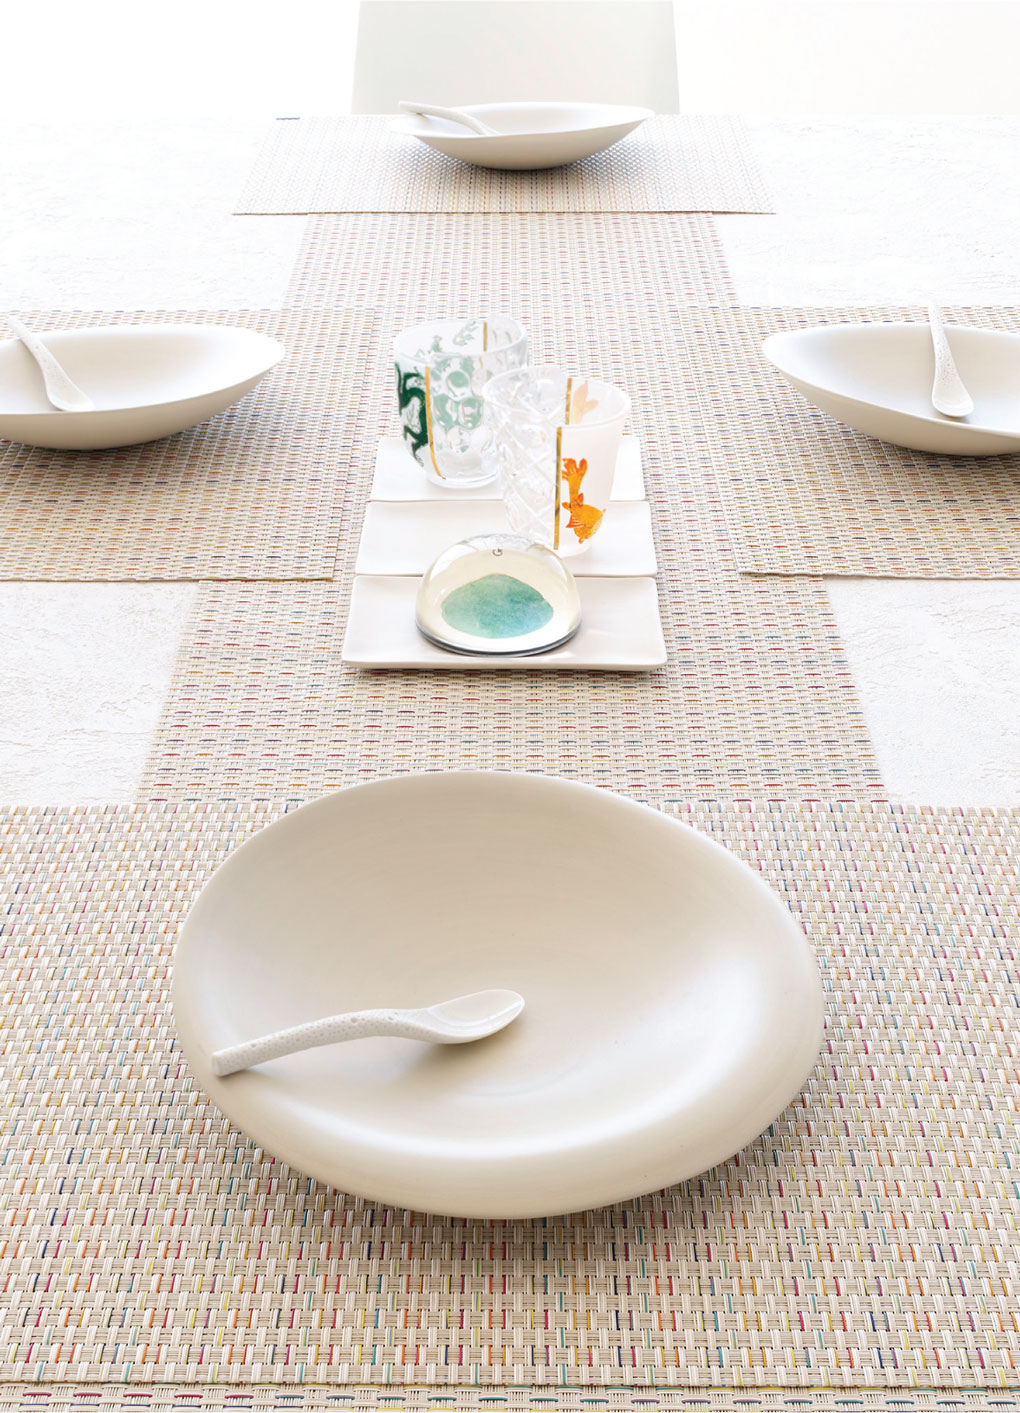 Table settings from Chilewich